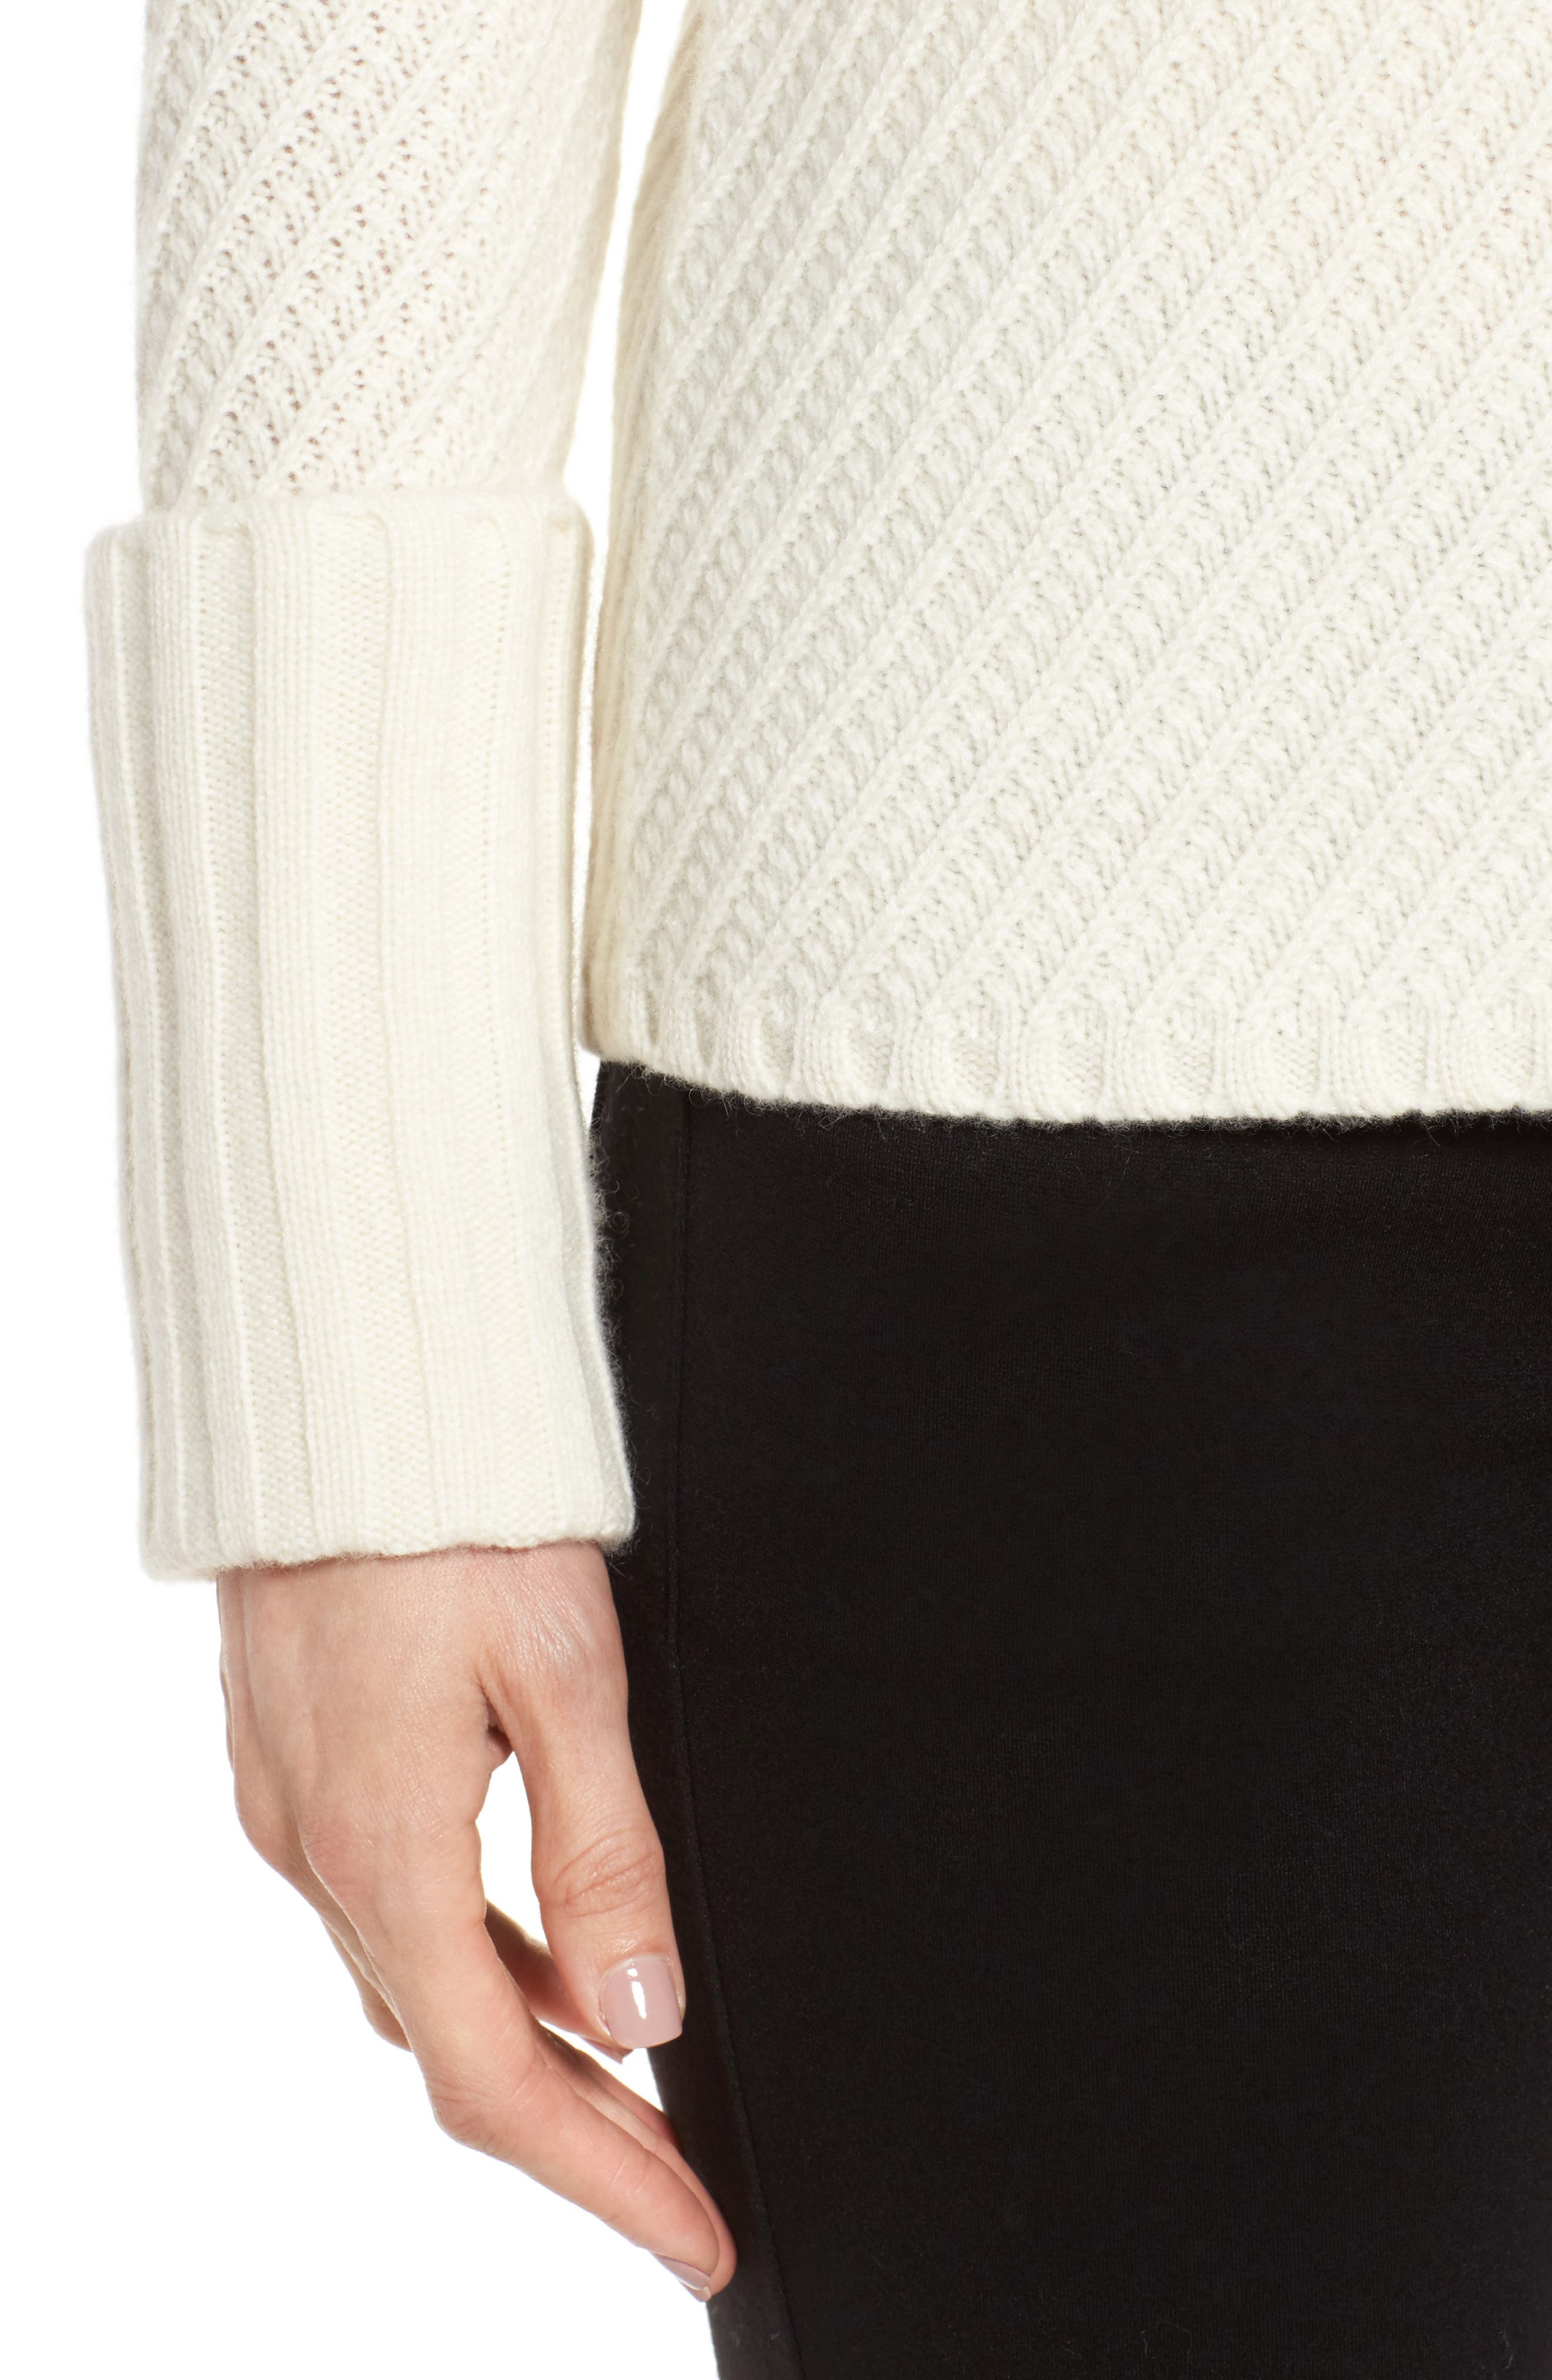 Textured Cashmere Sweater,                             Alternate thumbnail 4, color,                             Ivory Soft